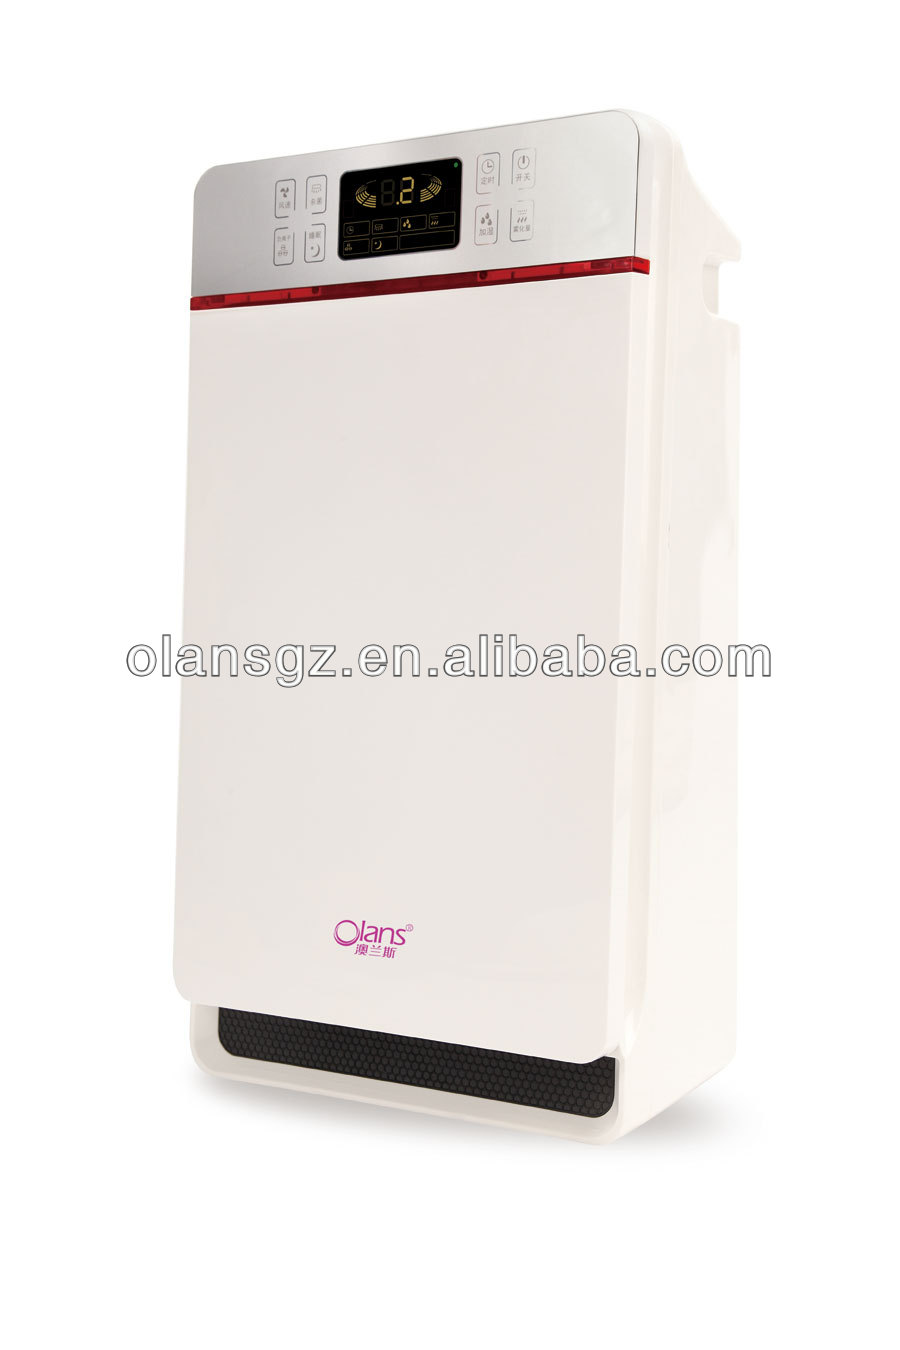 home ozone air purifier for Klagenfurt am Woerthersee Austria importer retailer dealer and distributor from china manufactuer